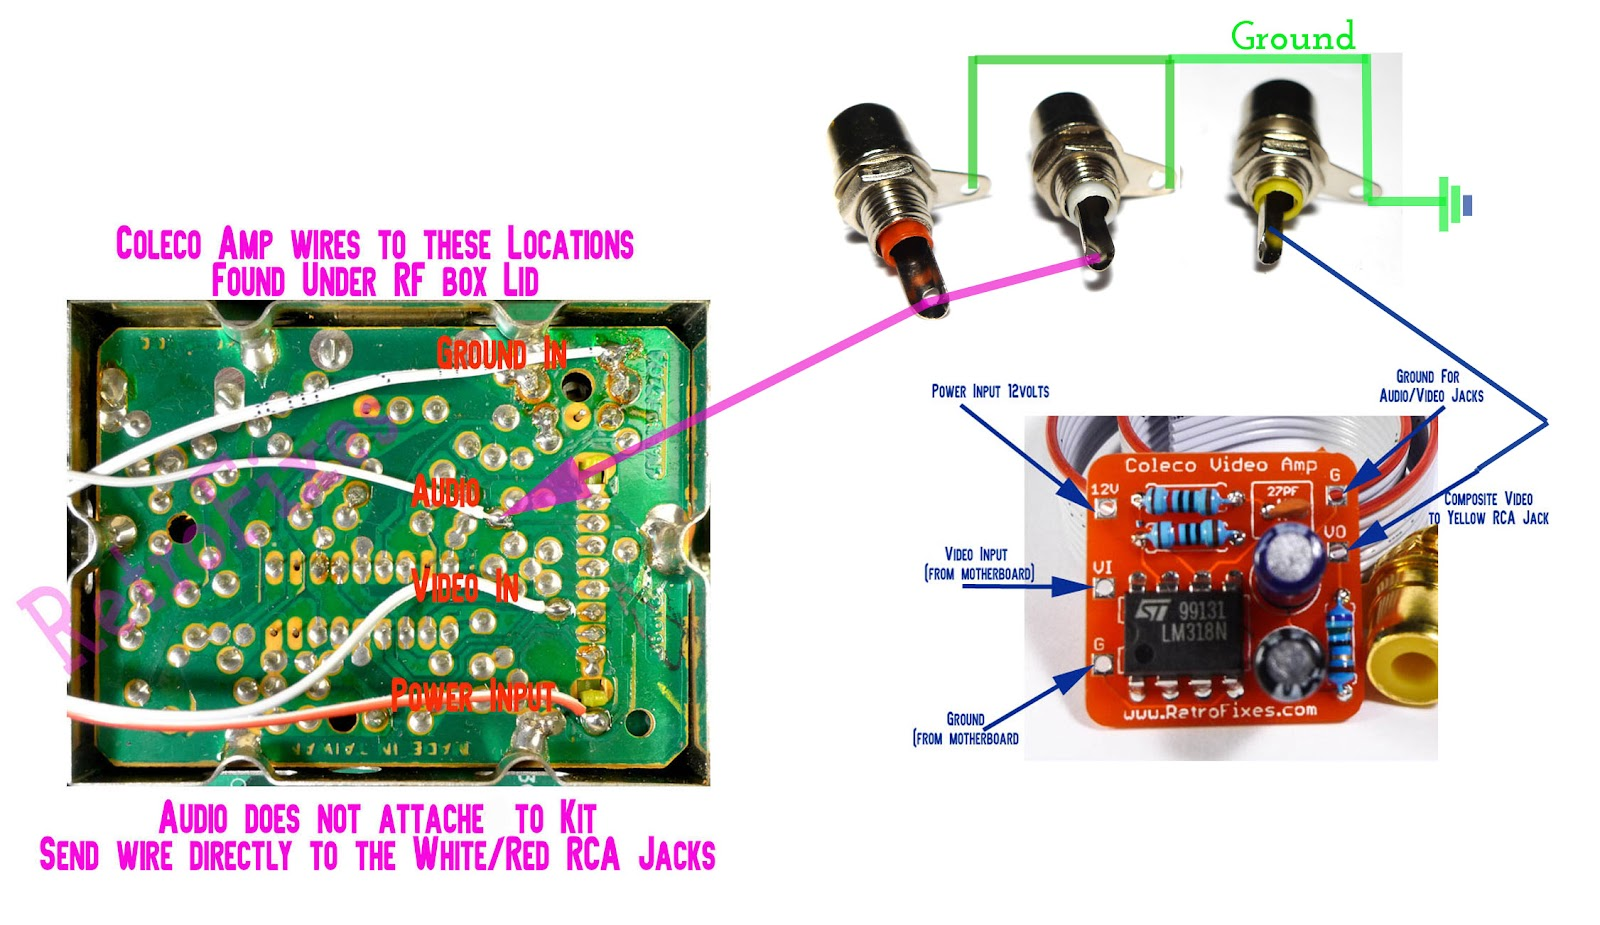 medium resolution of the illustration below is a quick overview of the pin outs and soldering points view the image at max size and double check you installation